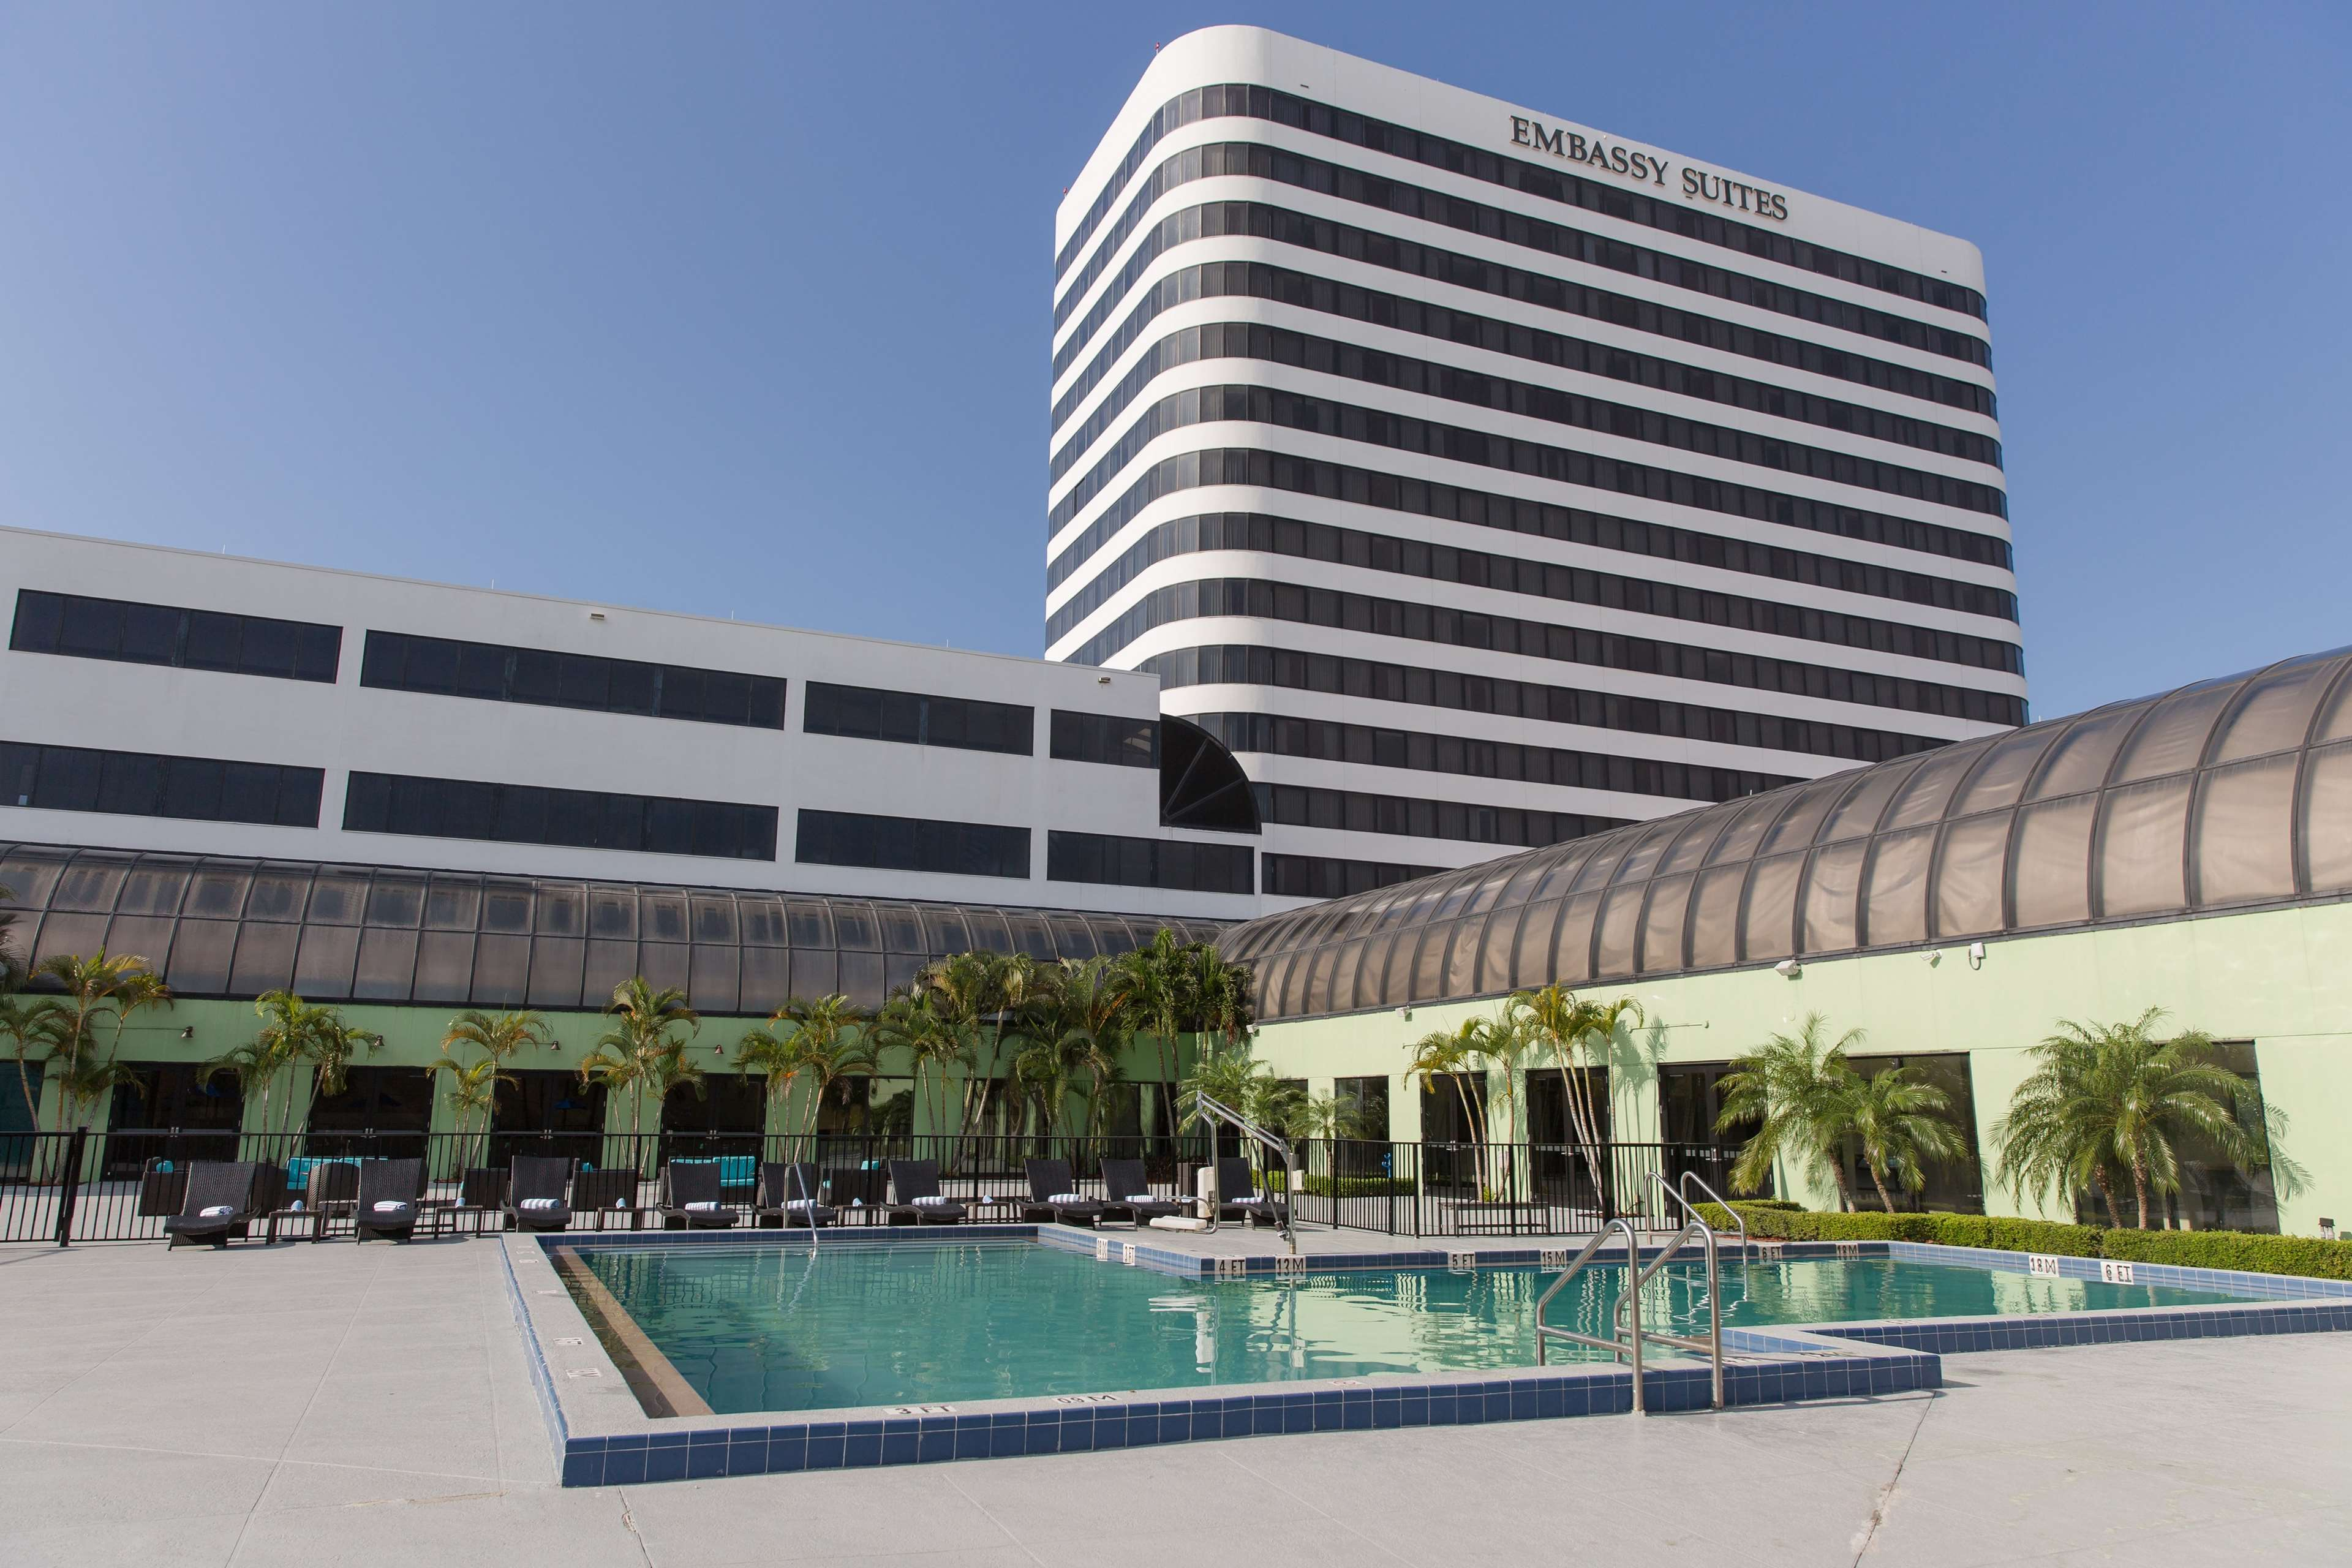 Embassy Suites by Hilton West Palm Beach Central image 5